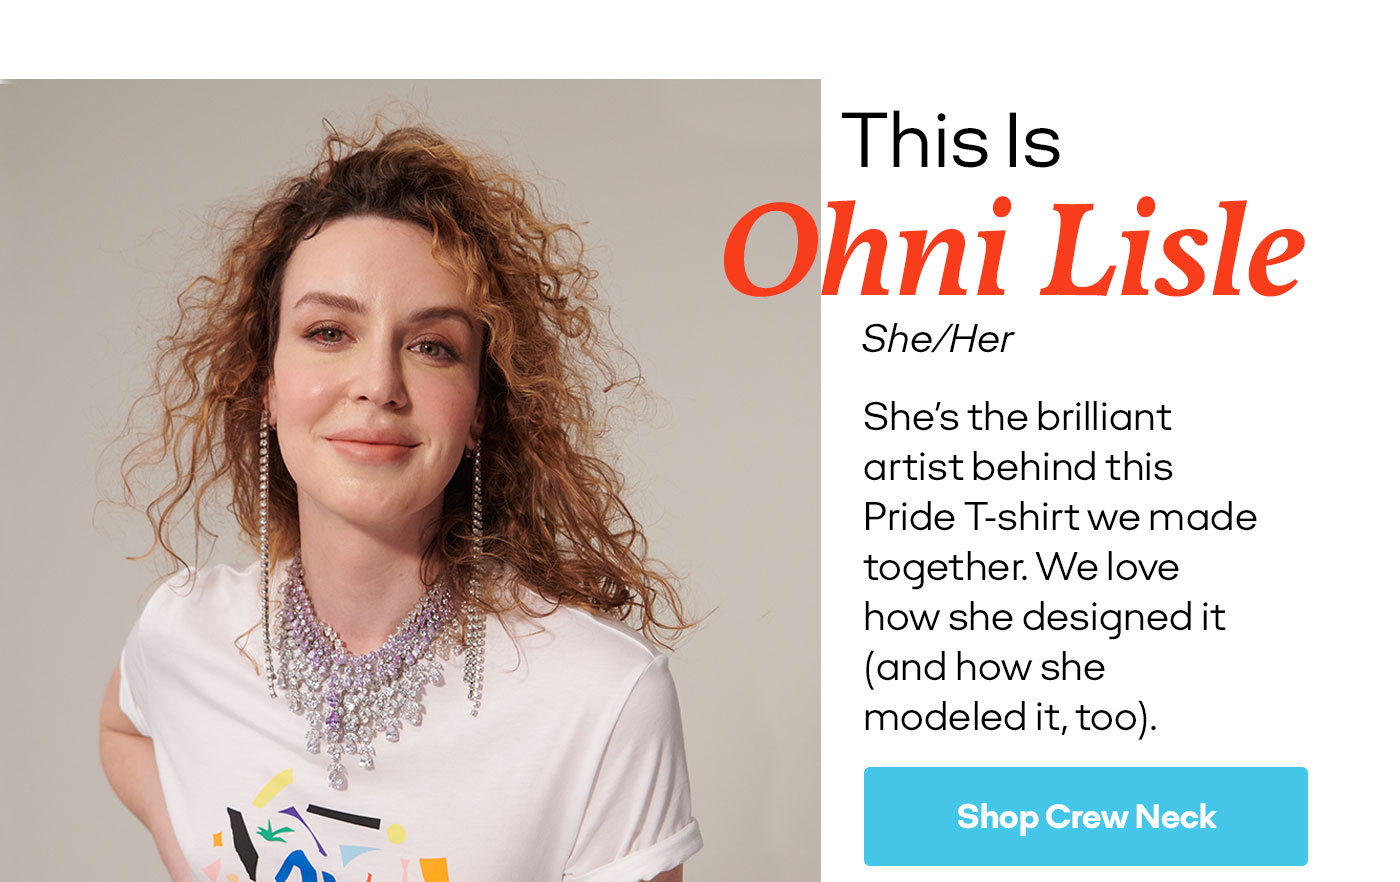 This is Ohni Lisle | She/Her | She's the brilliant artist behind this Pride T-Shirt we made together. We love how she designed it (and how she modeled it, too). | Shop Crew Neck